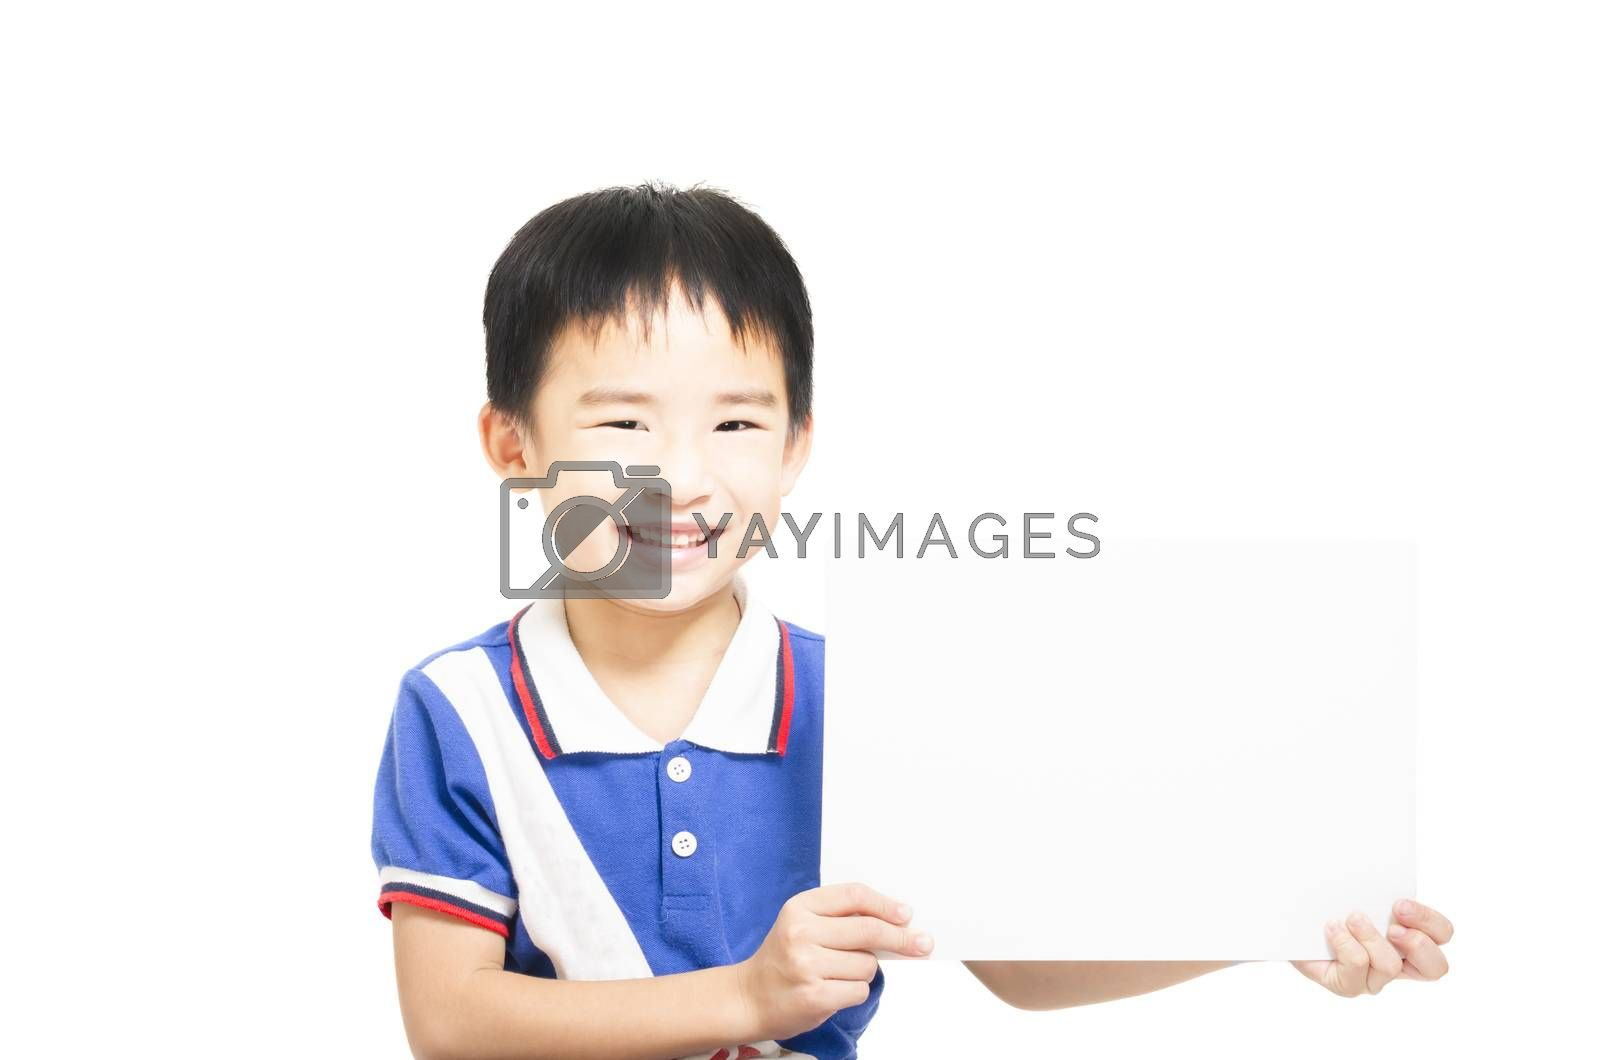 Royalty free image of Smart child holding white paper by FrankyLiu